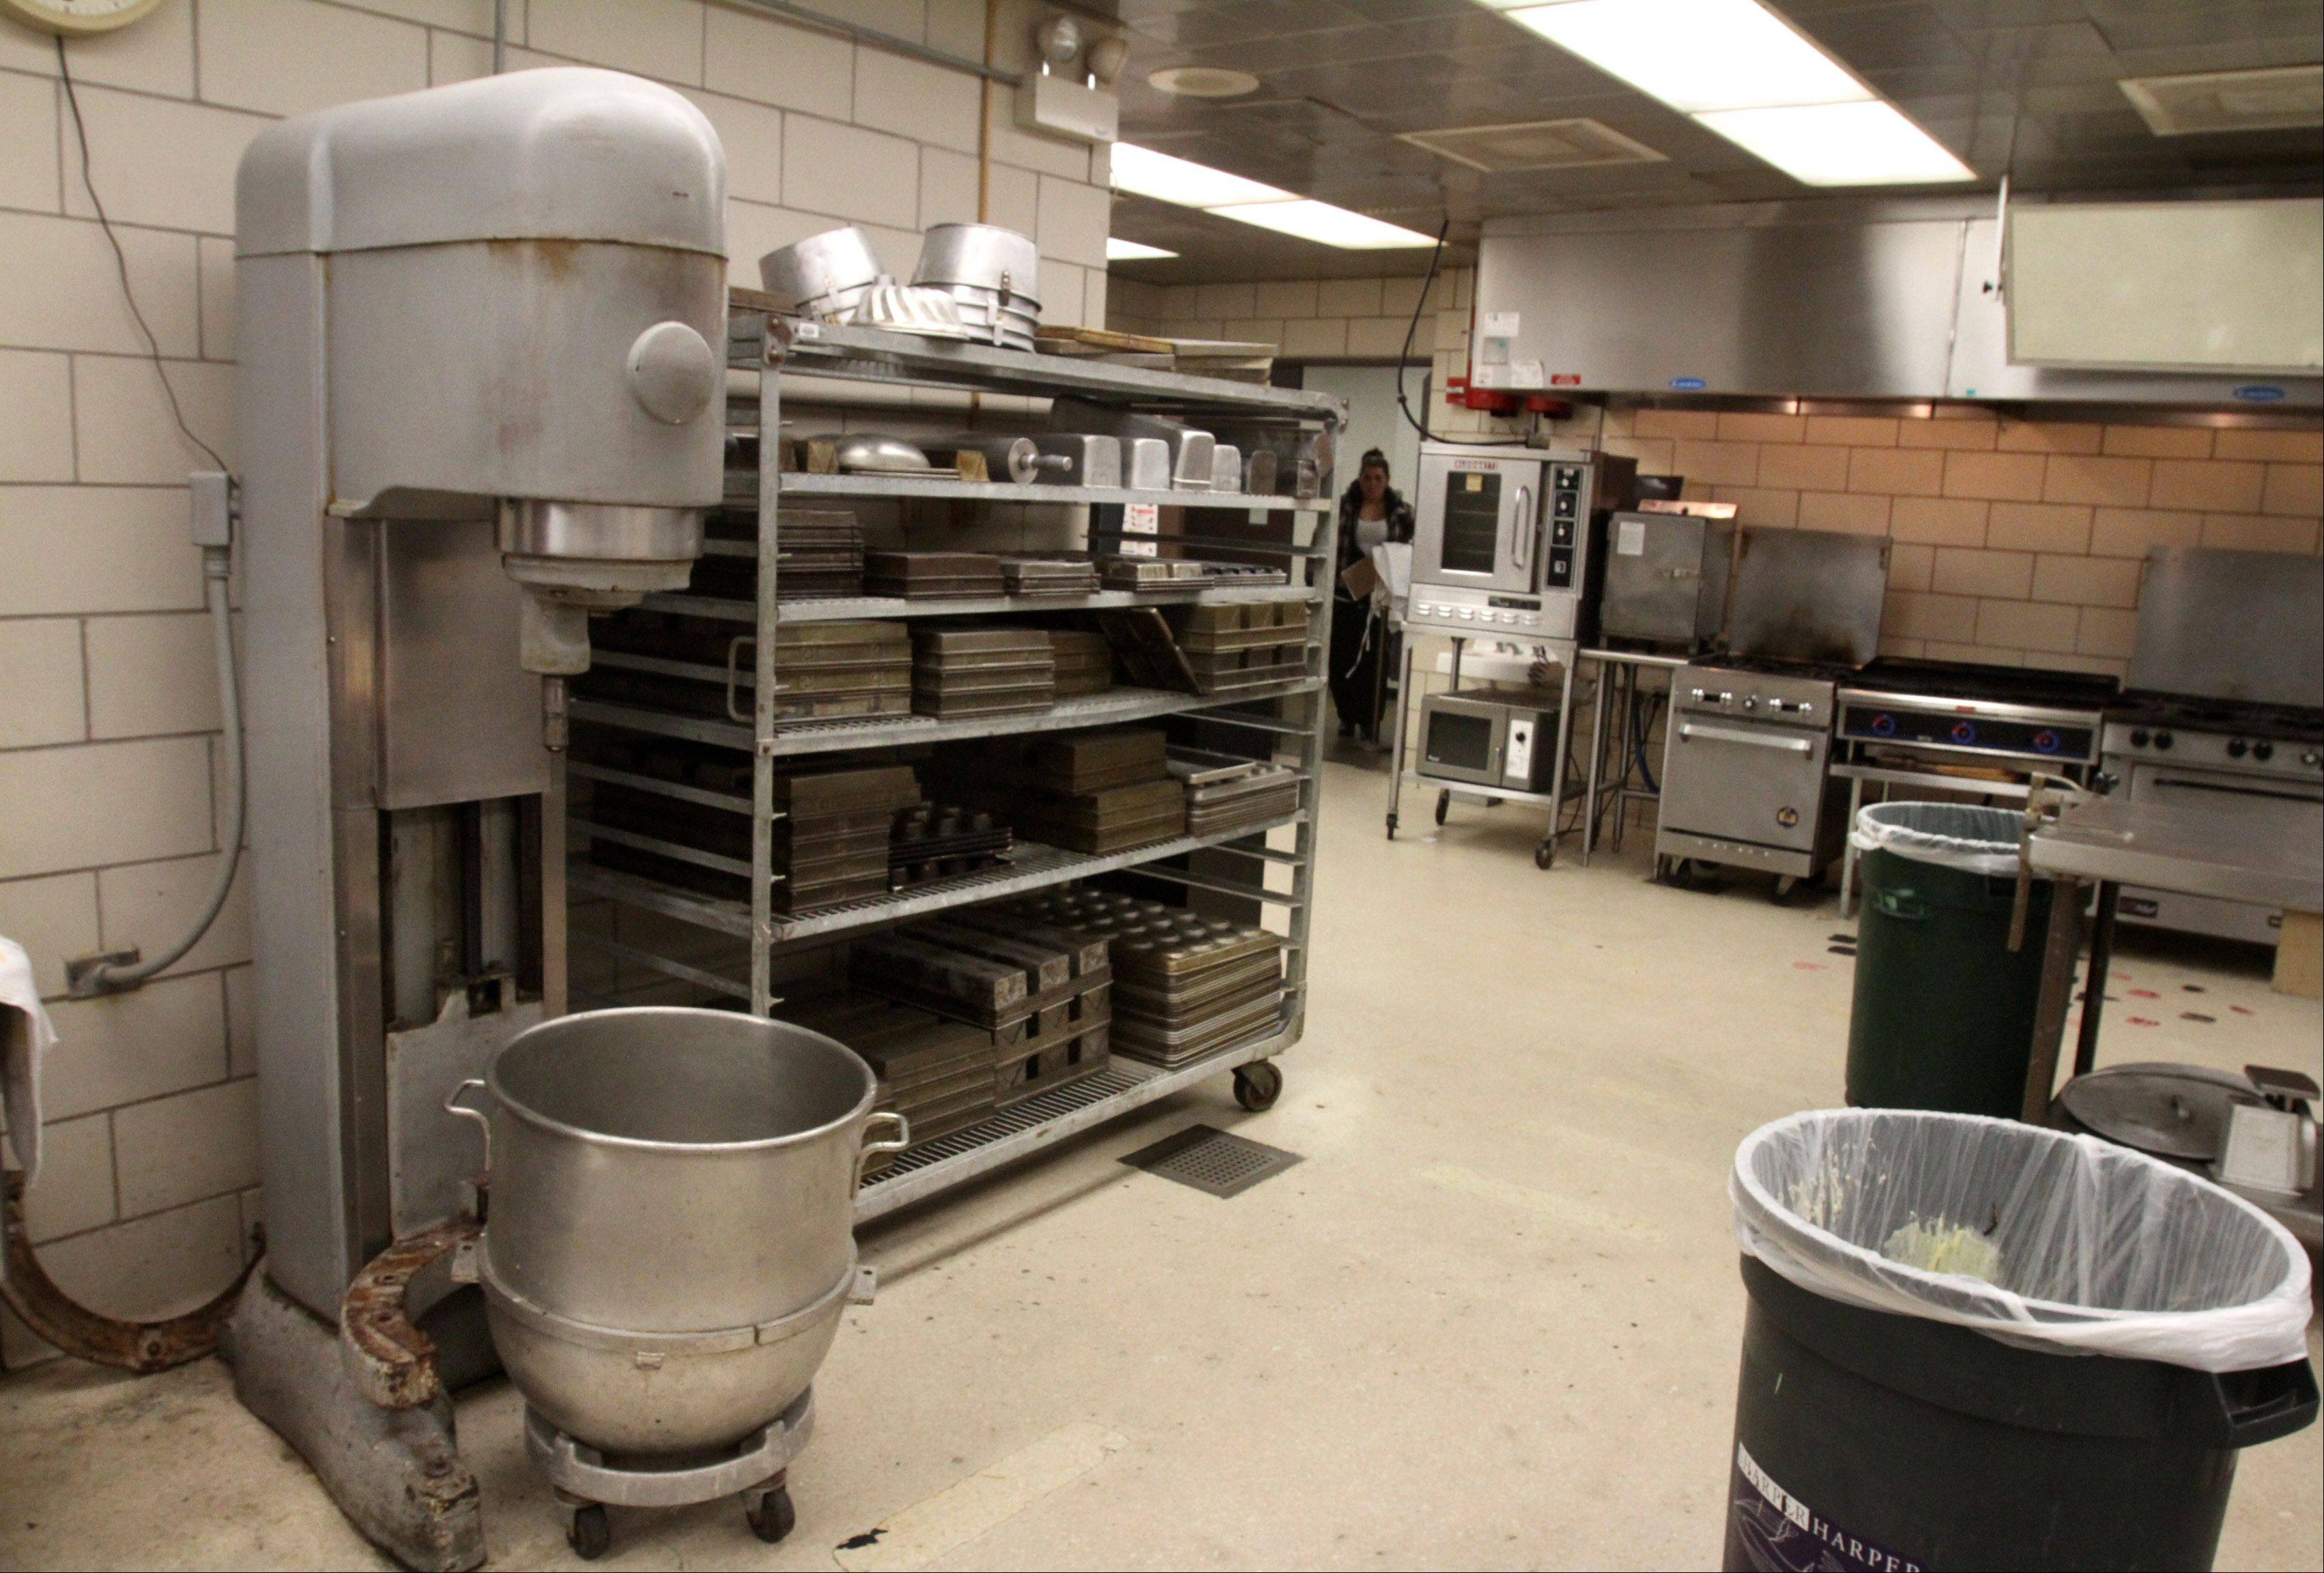 Harper College culinary and hospitality students use dated equipment in a dingy basement. More than $5 million will be spent modernizing the program under a plan being developed by the school.